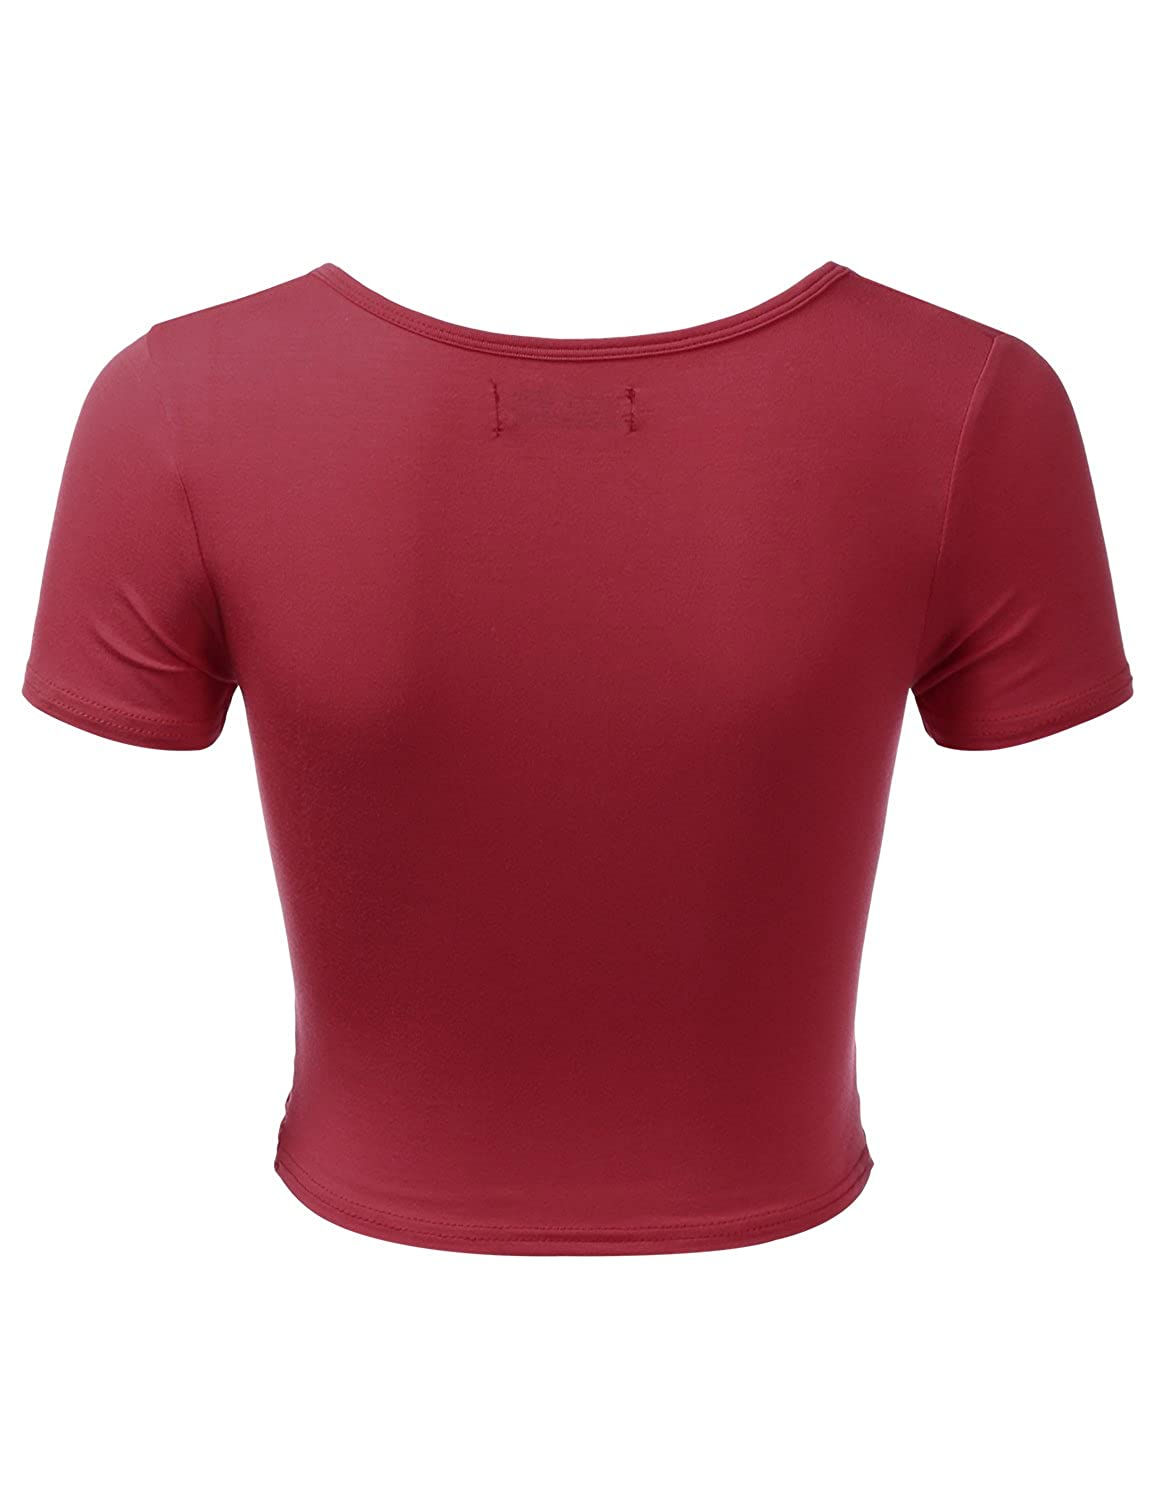 99f56c527c9 TWINTH Women's Basic Wrap Crop Tops Deep V Neck Slim Casual T Shirt Plus  Size at Amazon Women's Clothing store: